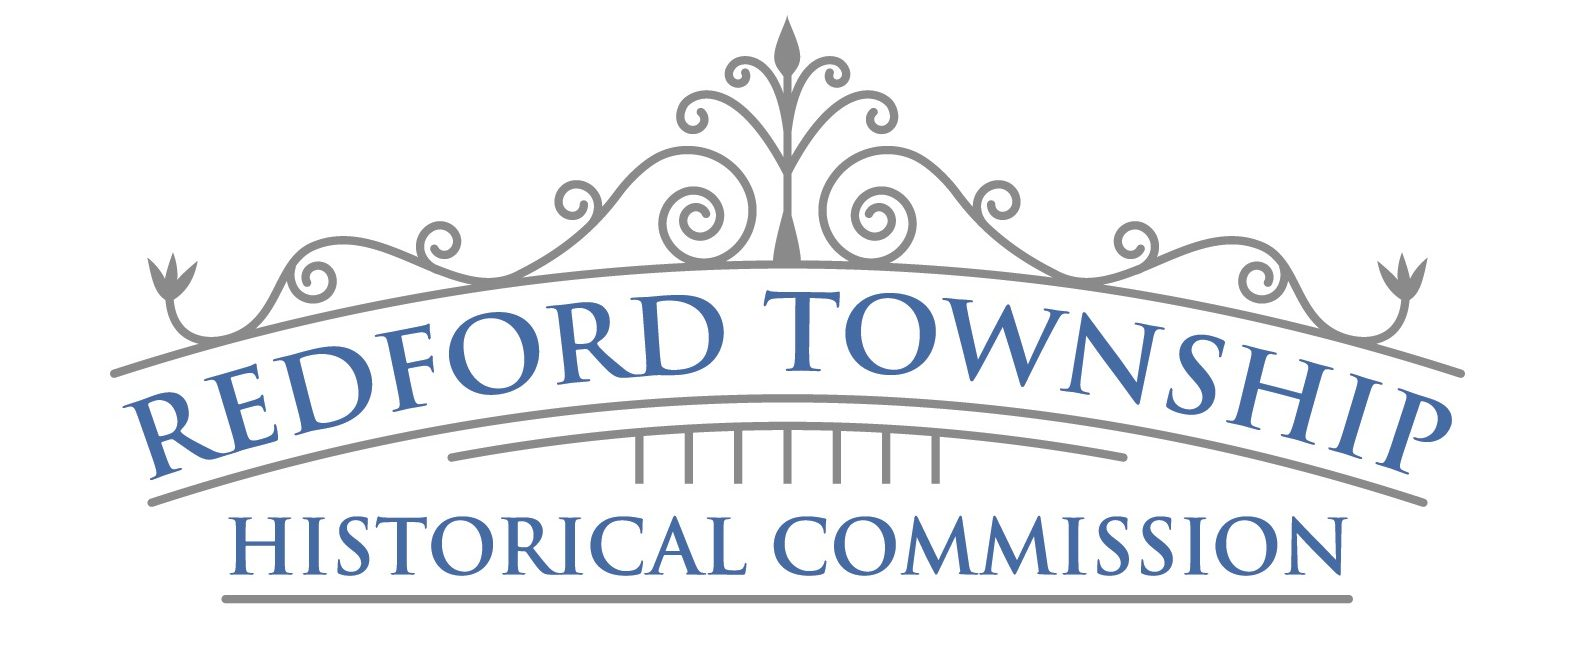 Redford Township Historical Commission